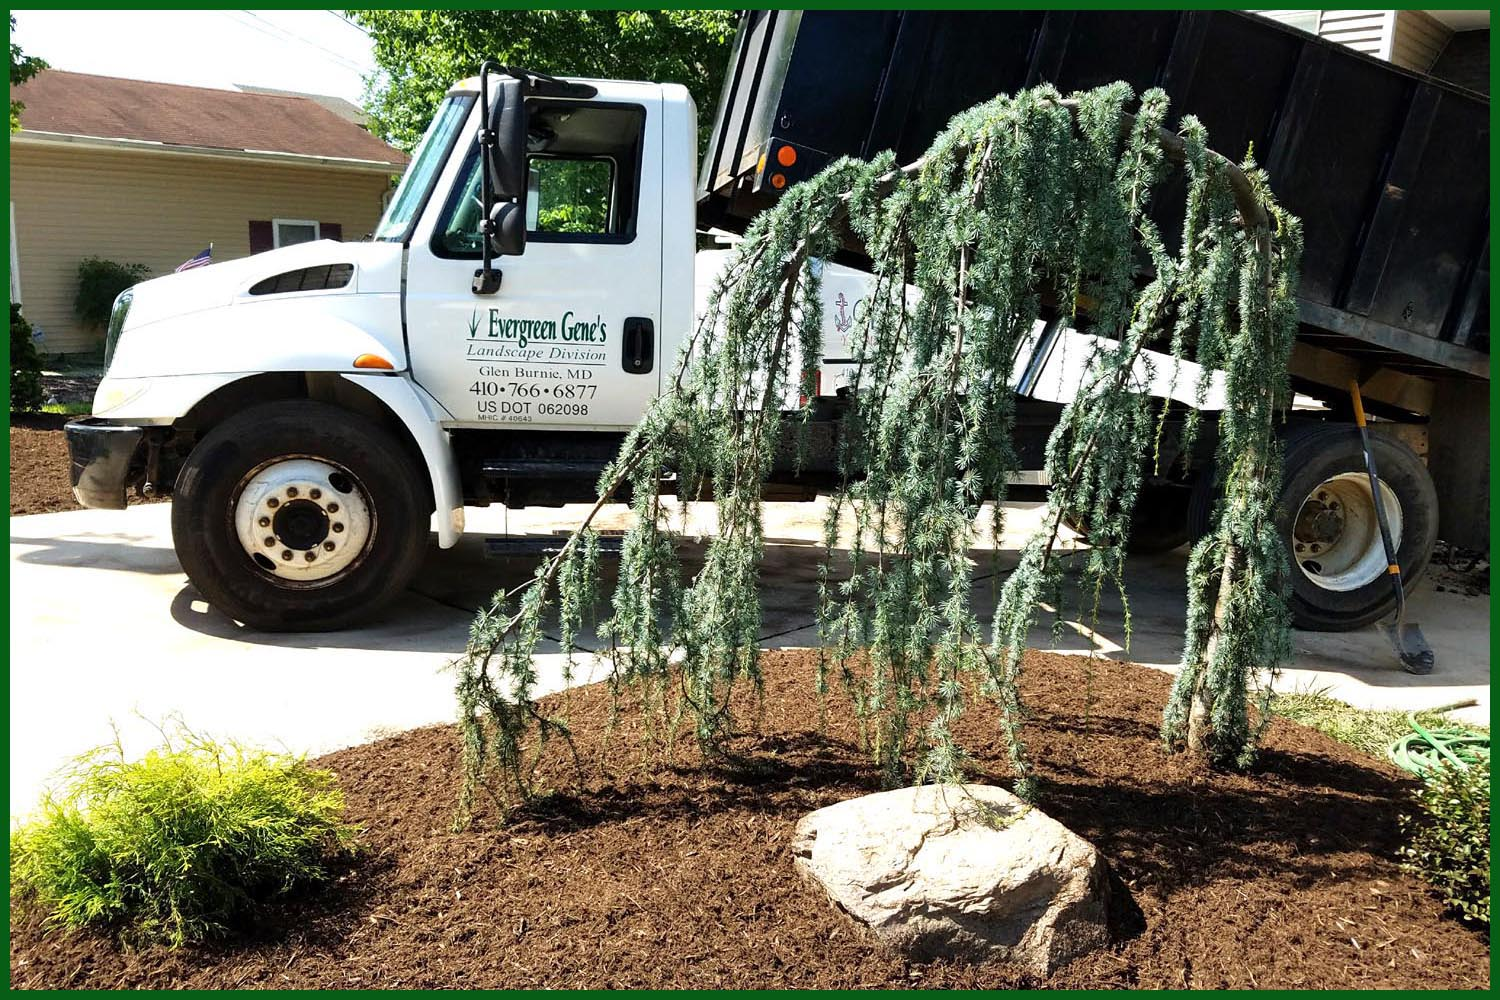 evergreen gene's landscaping, landscape contractor